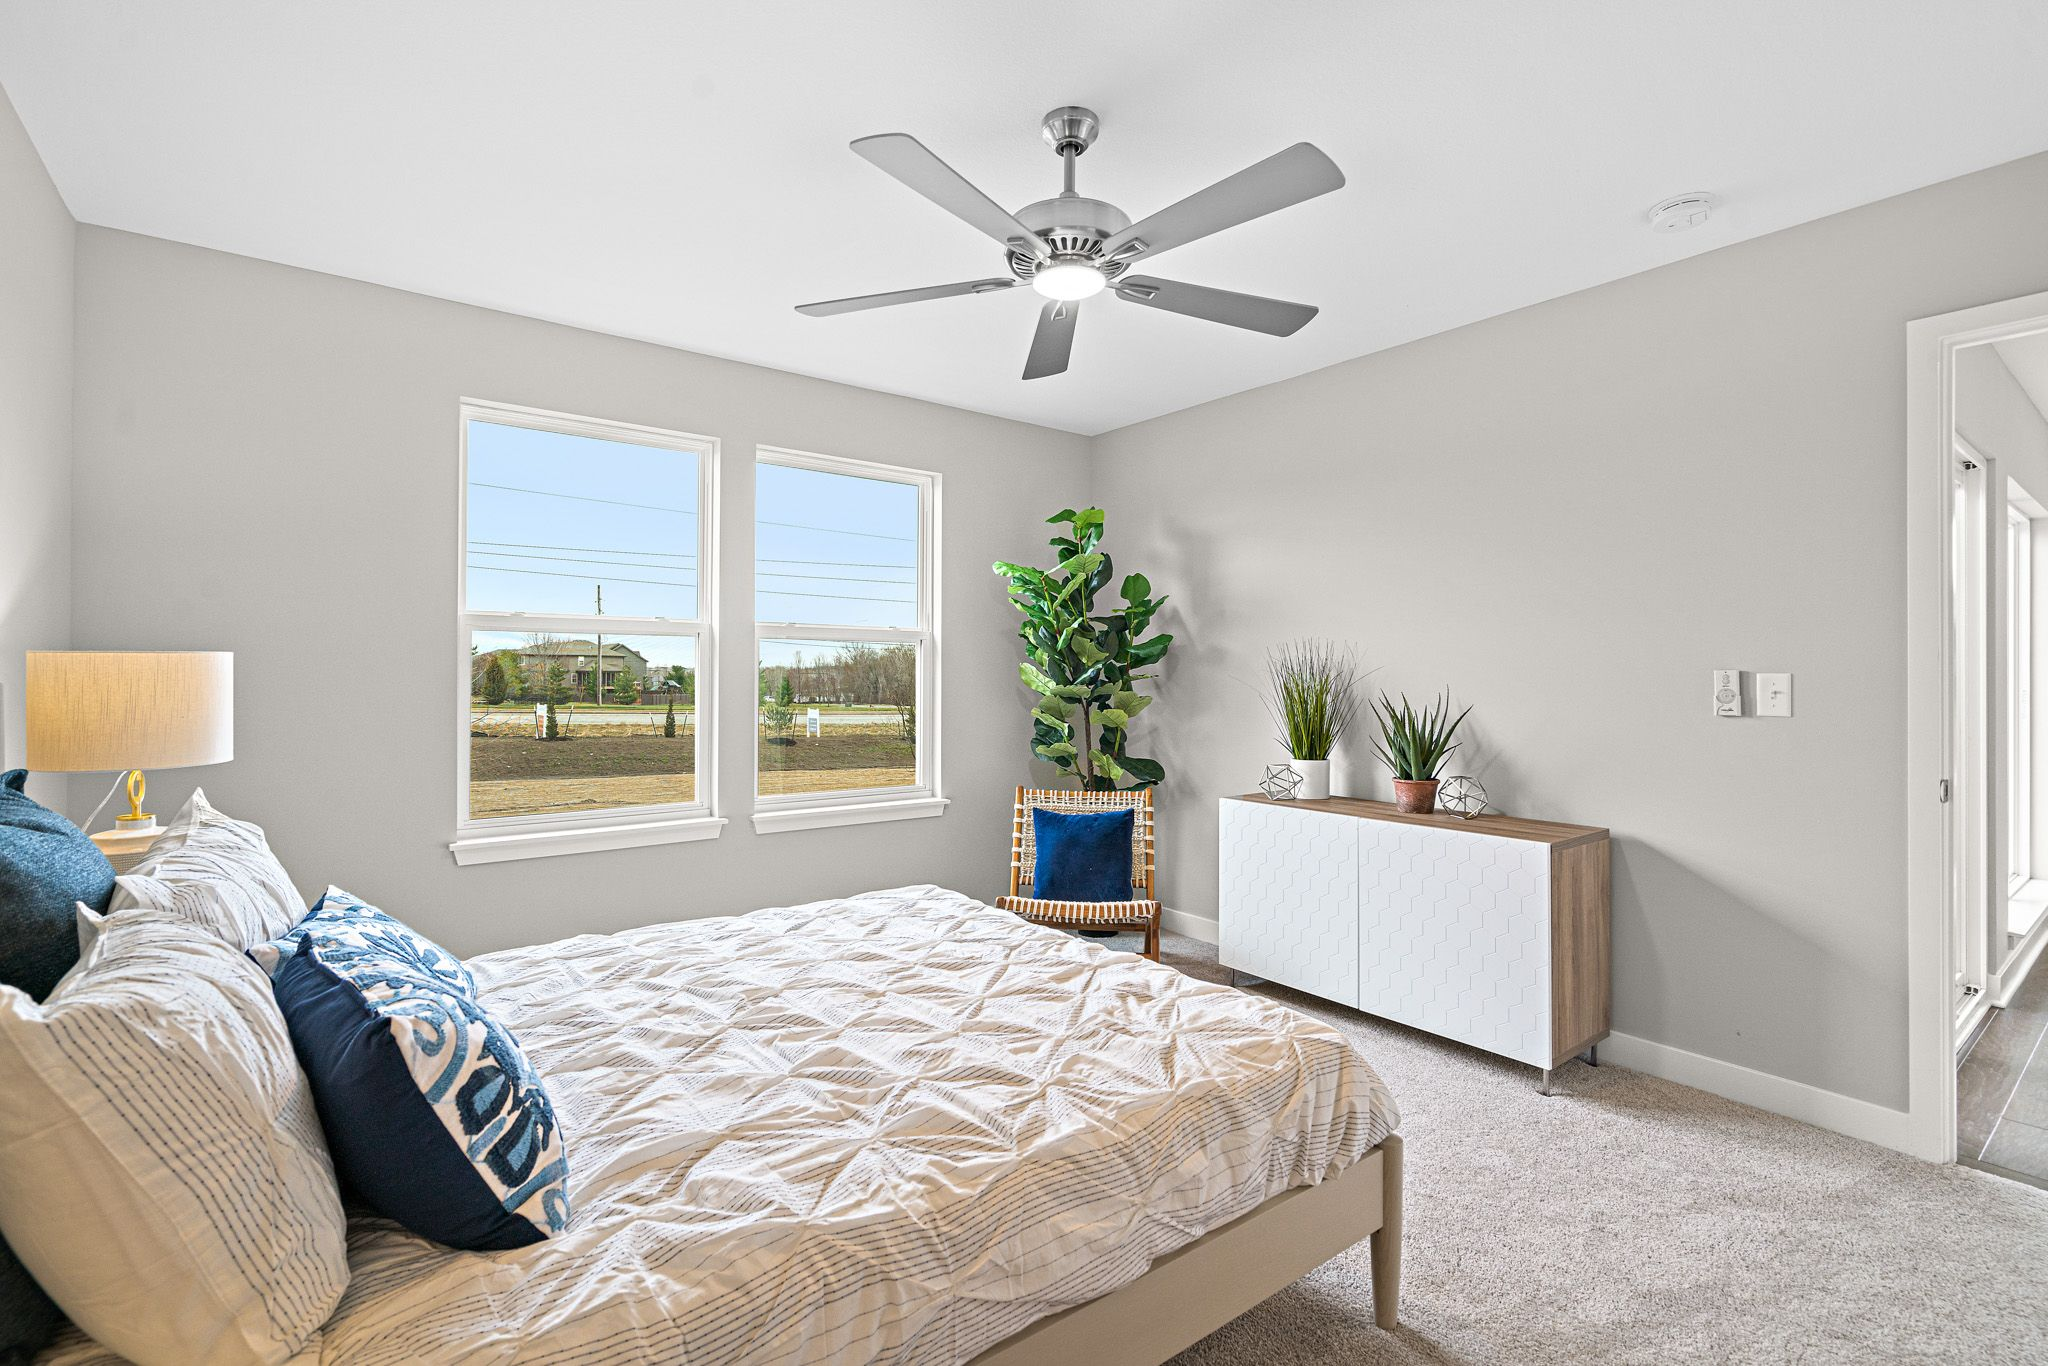 Bedroom featured in the sienna-contemporary By clover & hive in Kansas City, MO